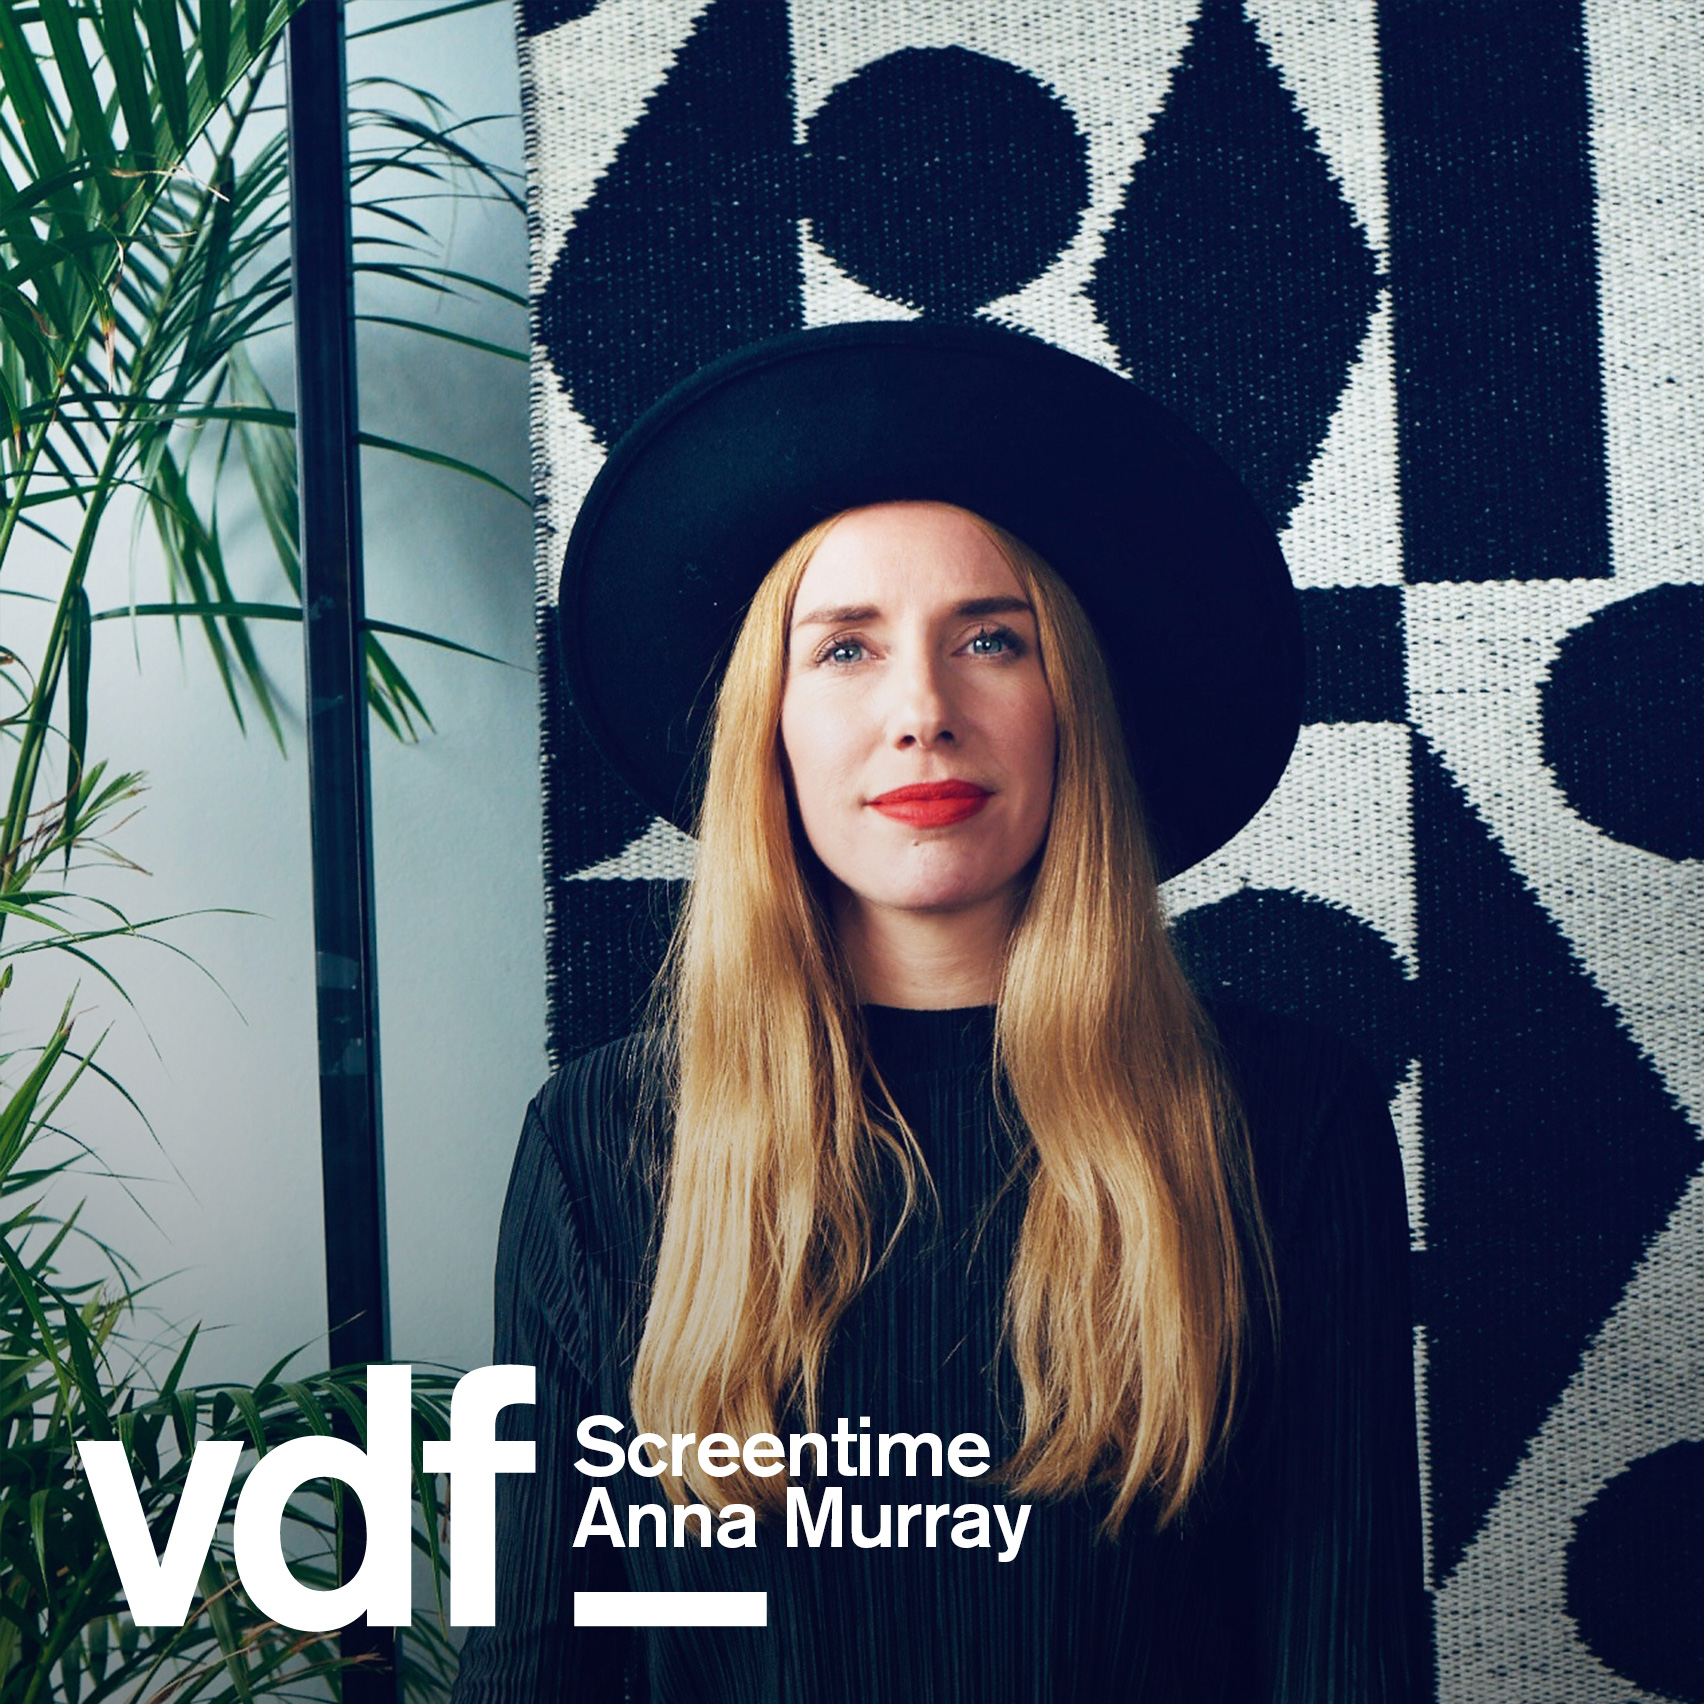 Anna Murray Screentime interview for VDF